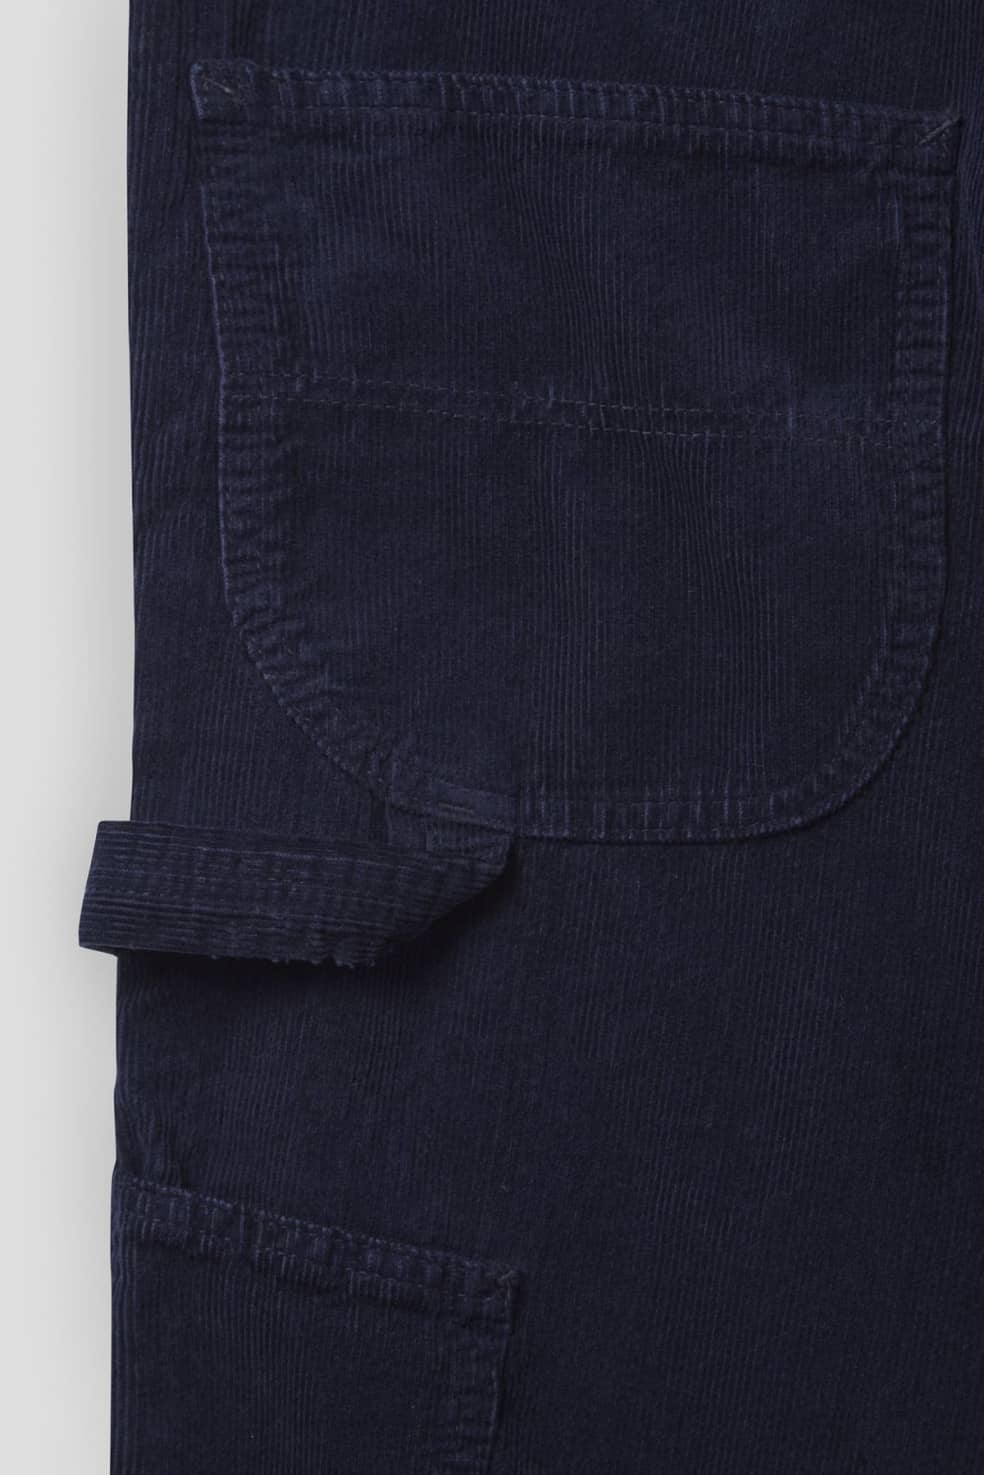 Stan Ray - 80's Painter Pant - Navy Cord | Trousers by Stan Ray 3